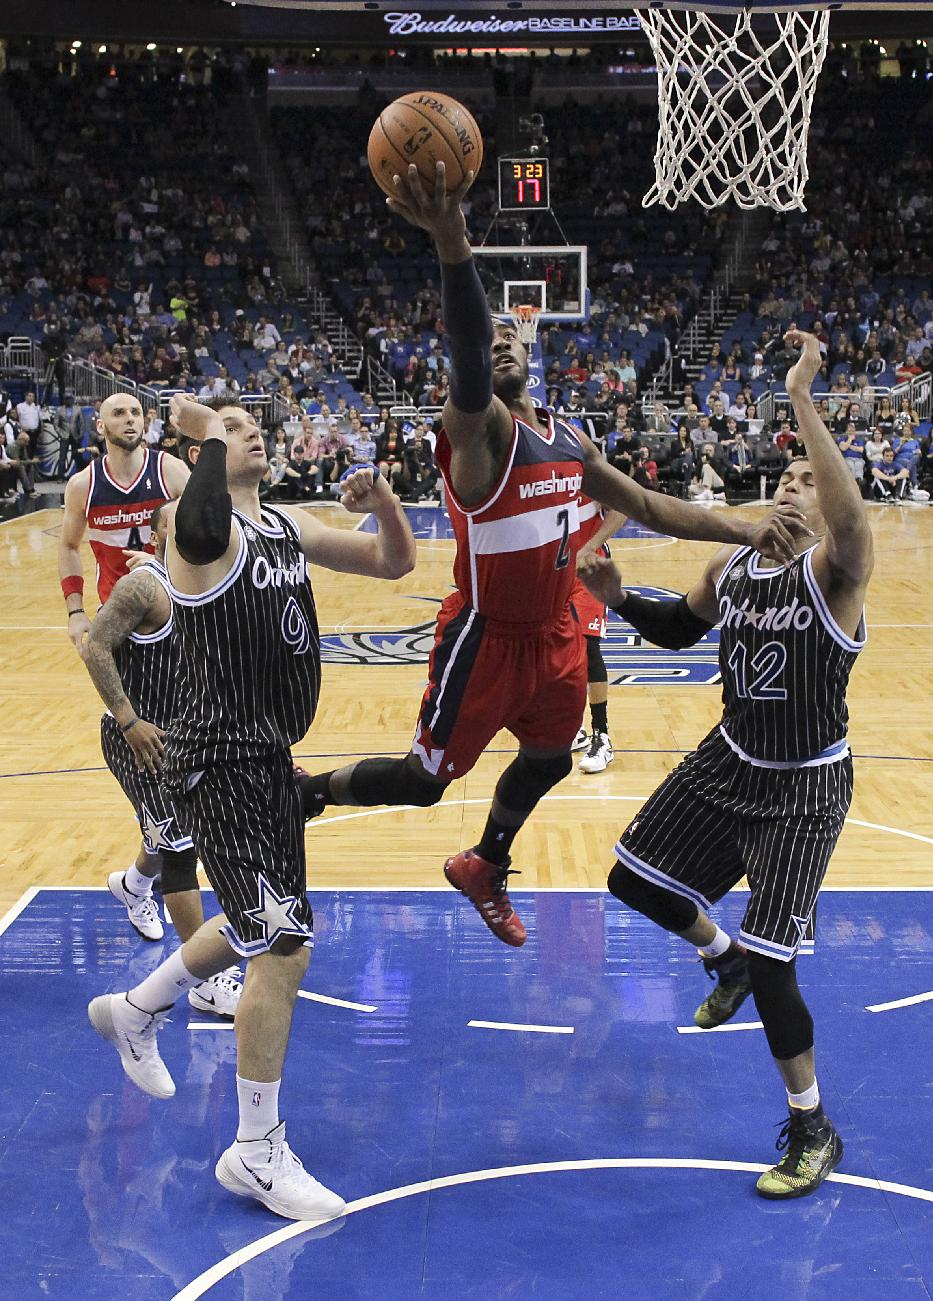 Washington Wizards' John Wall (2) drives in for a shot between Orlando Magic's Nikola Vucevic (9) and Tobias Harris (12) during the second half of an NBA basketball game in Orlando, Fla., Friday, March 14, 2014. Washington won in overtime, 105-101